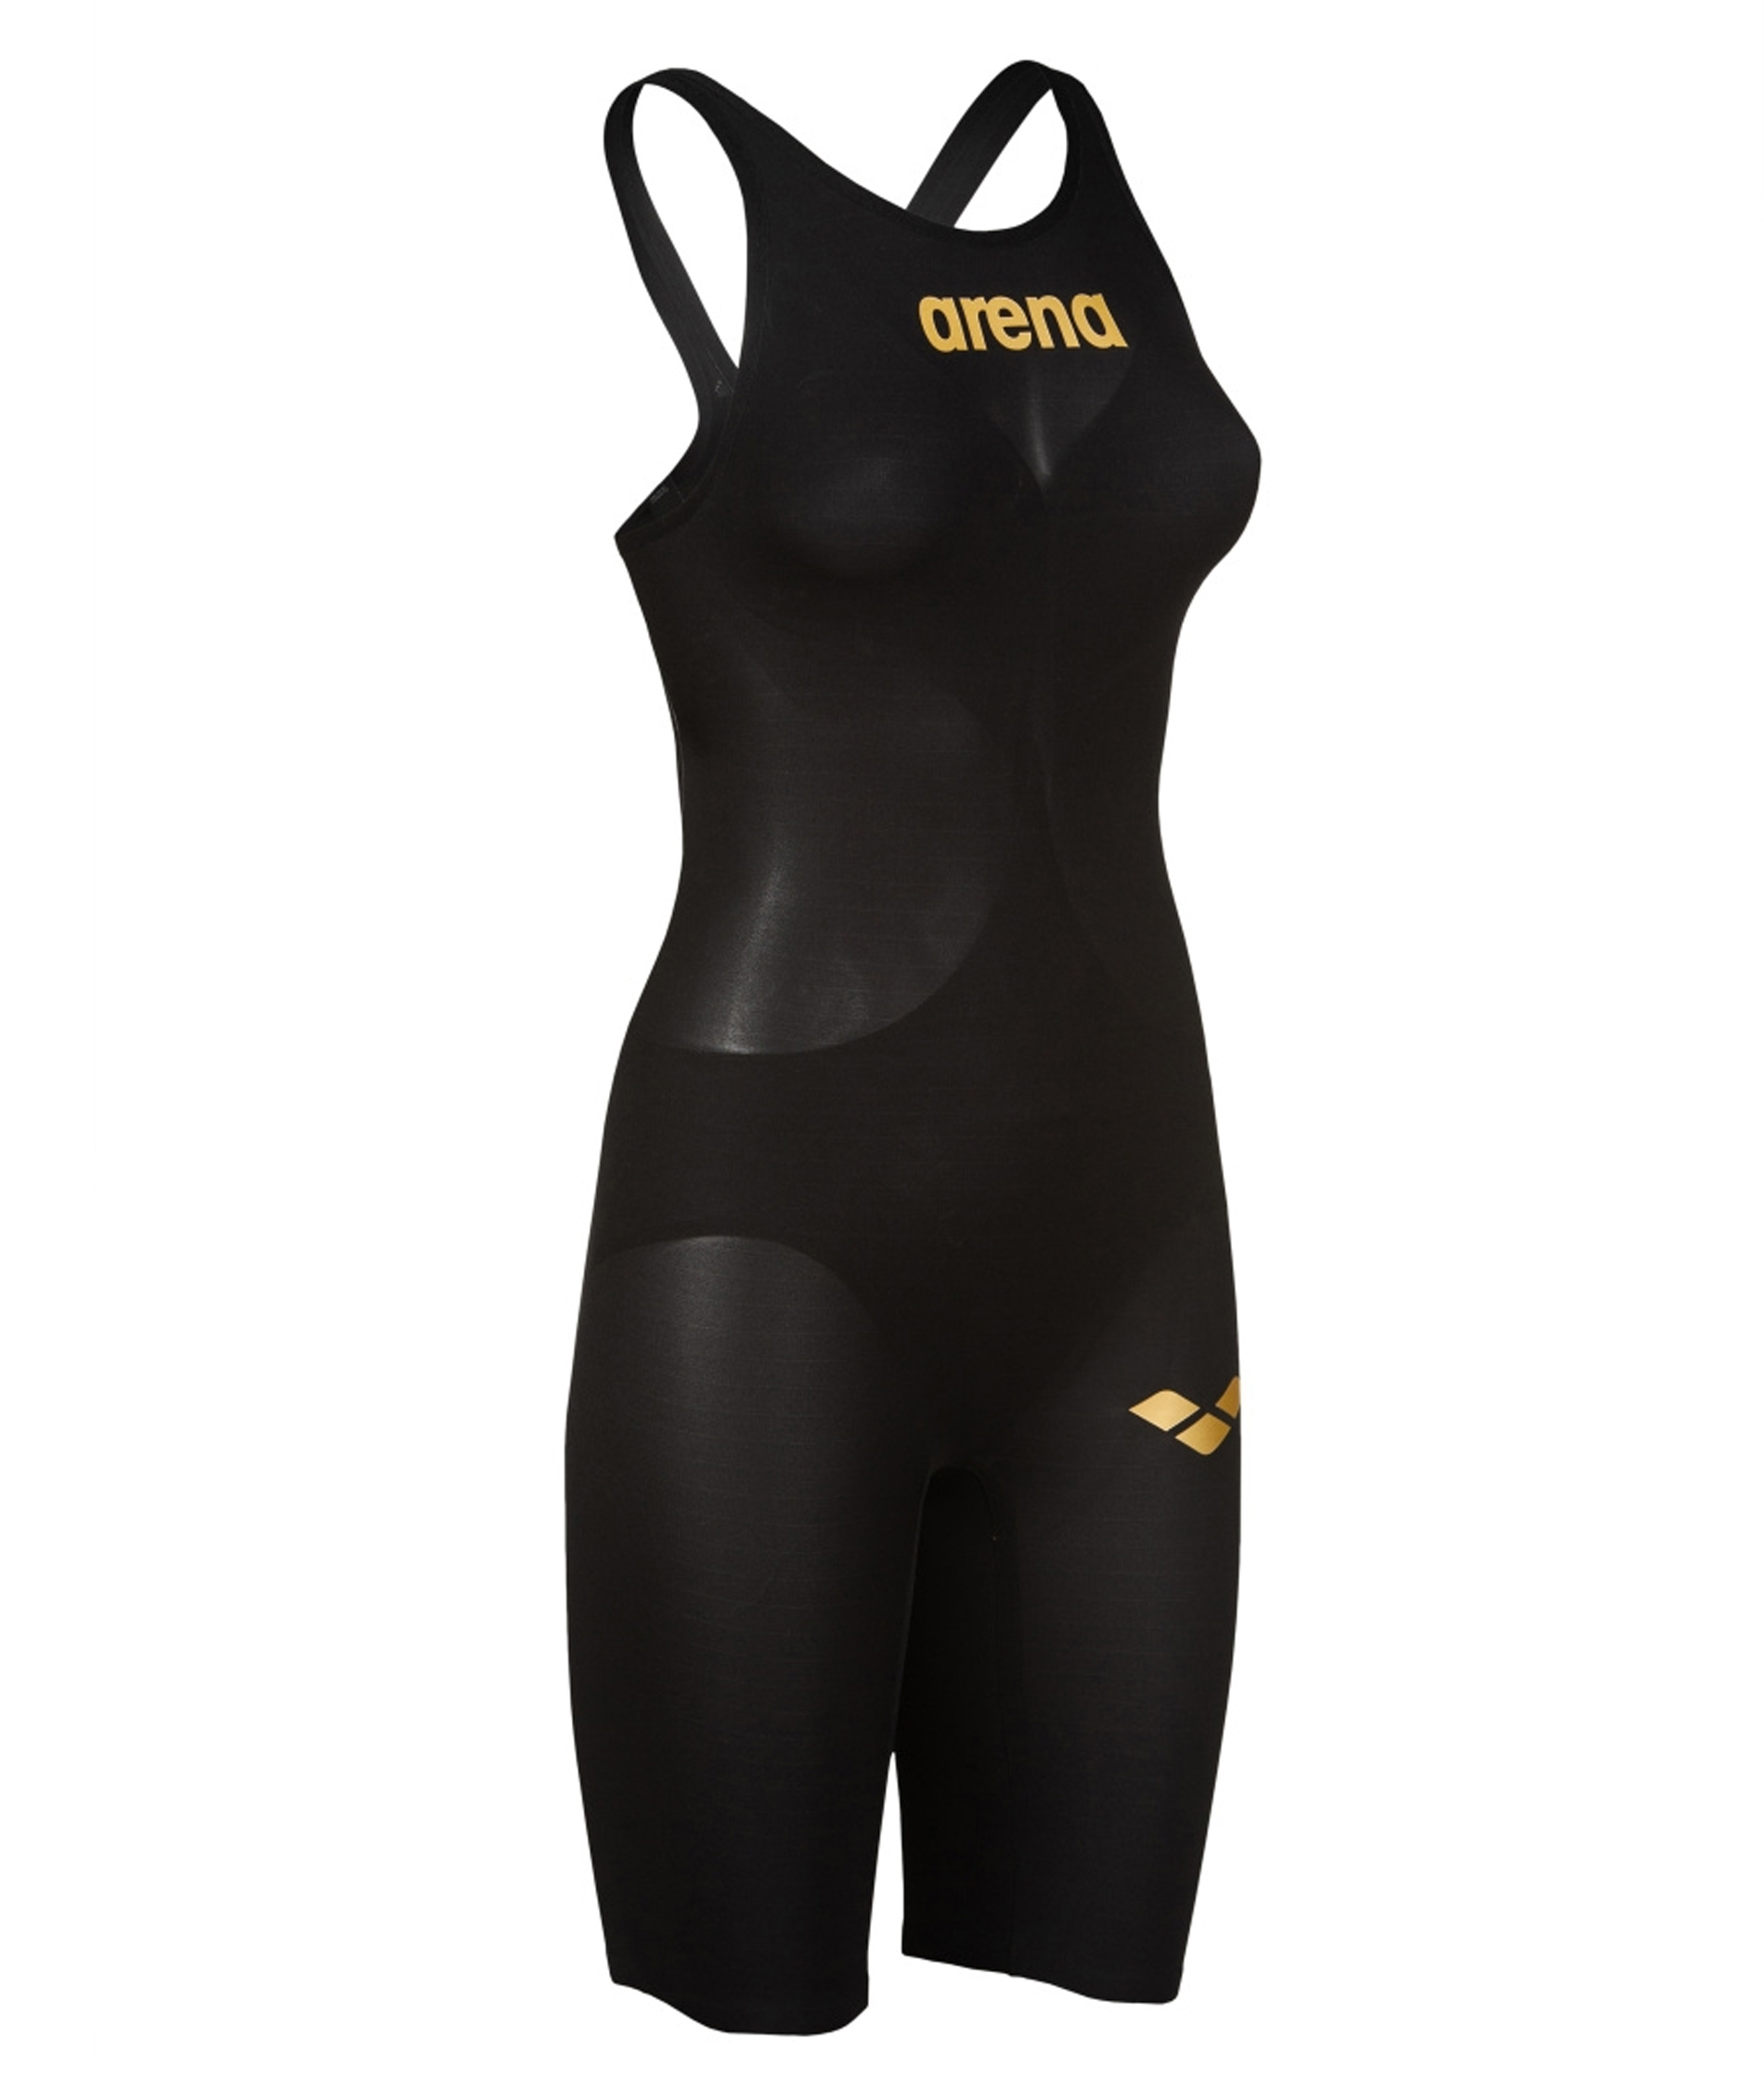 Arena Womens Carbon Air2 Open Back Kneeskin - Black/Gold